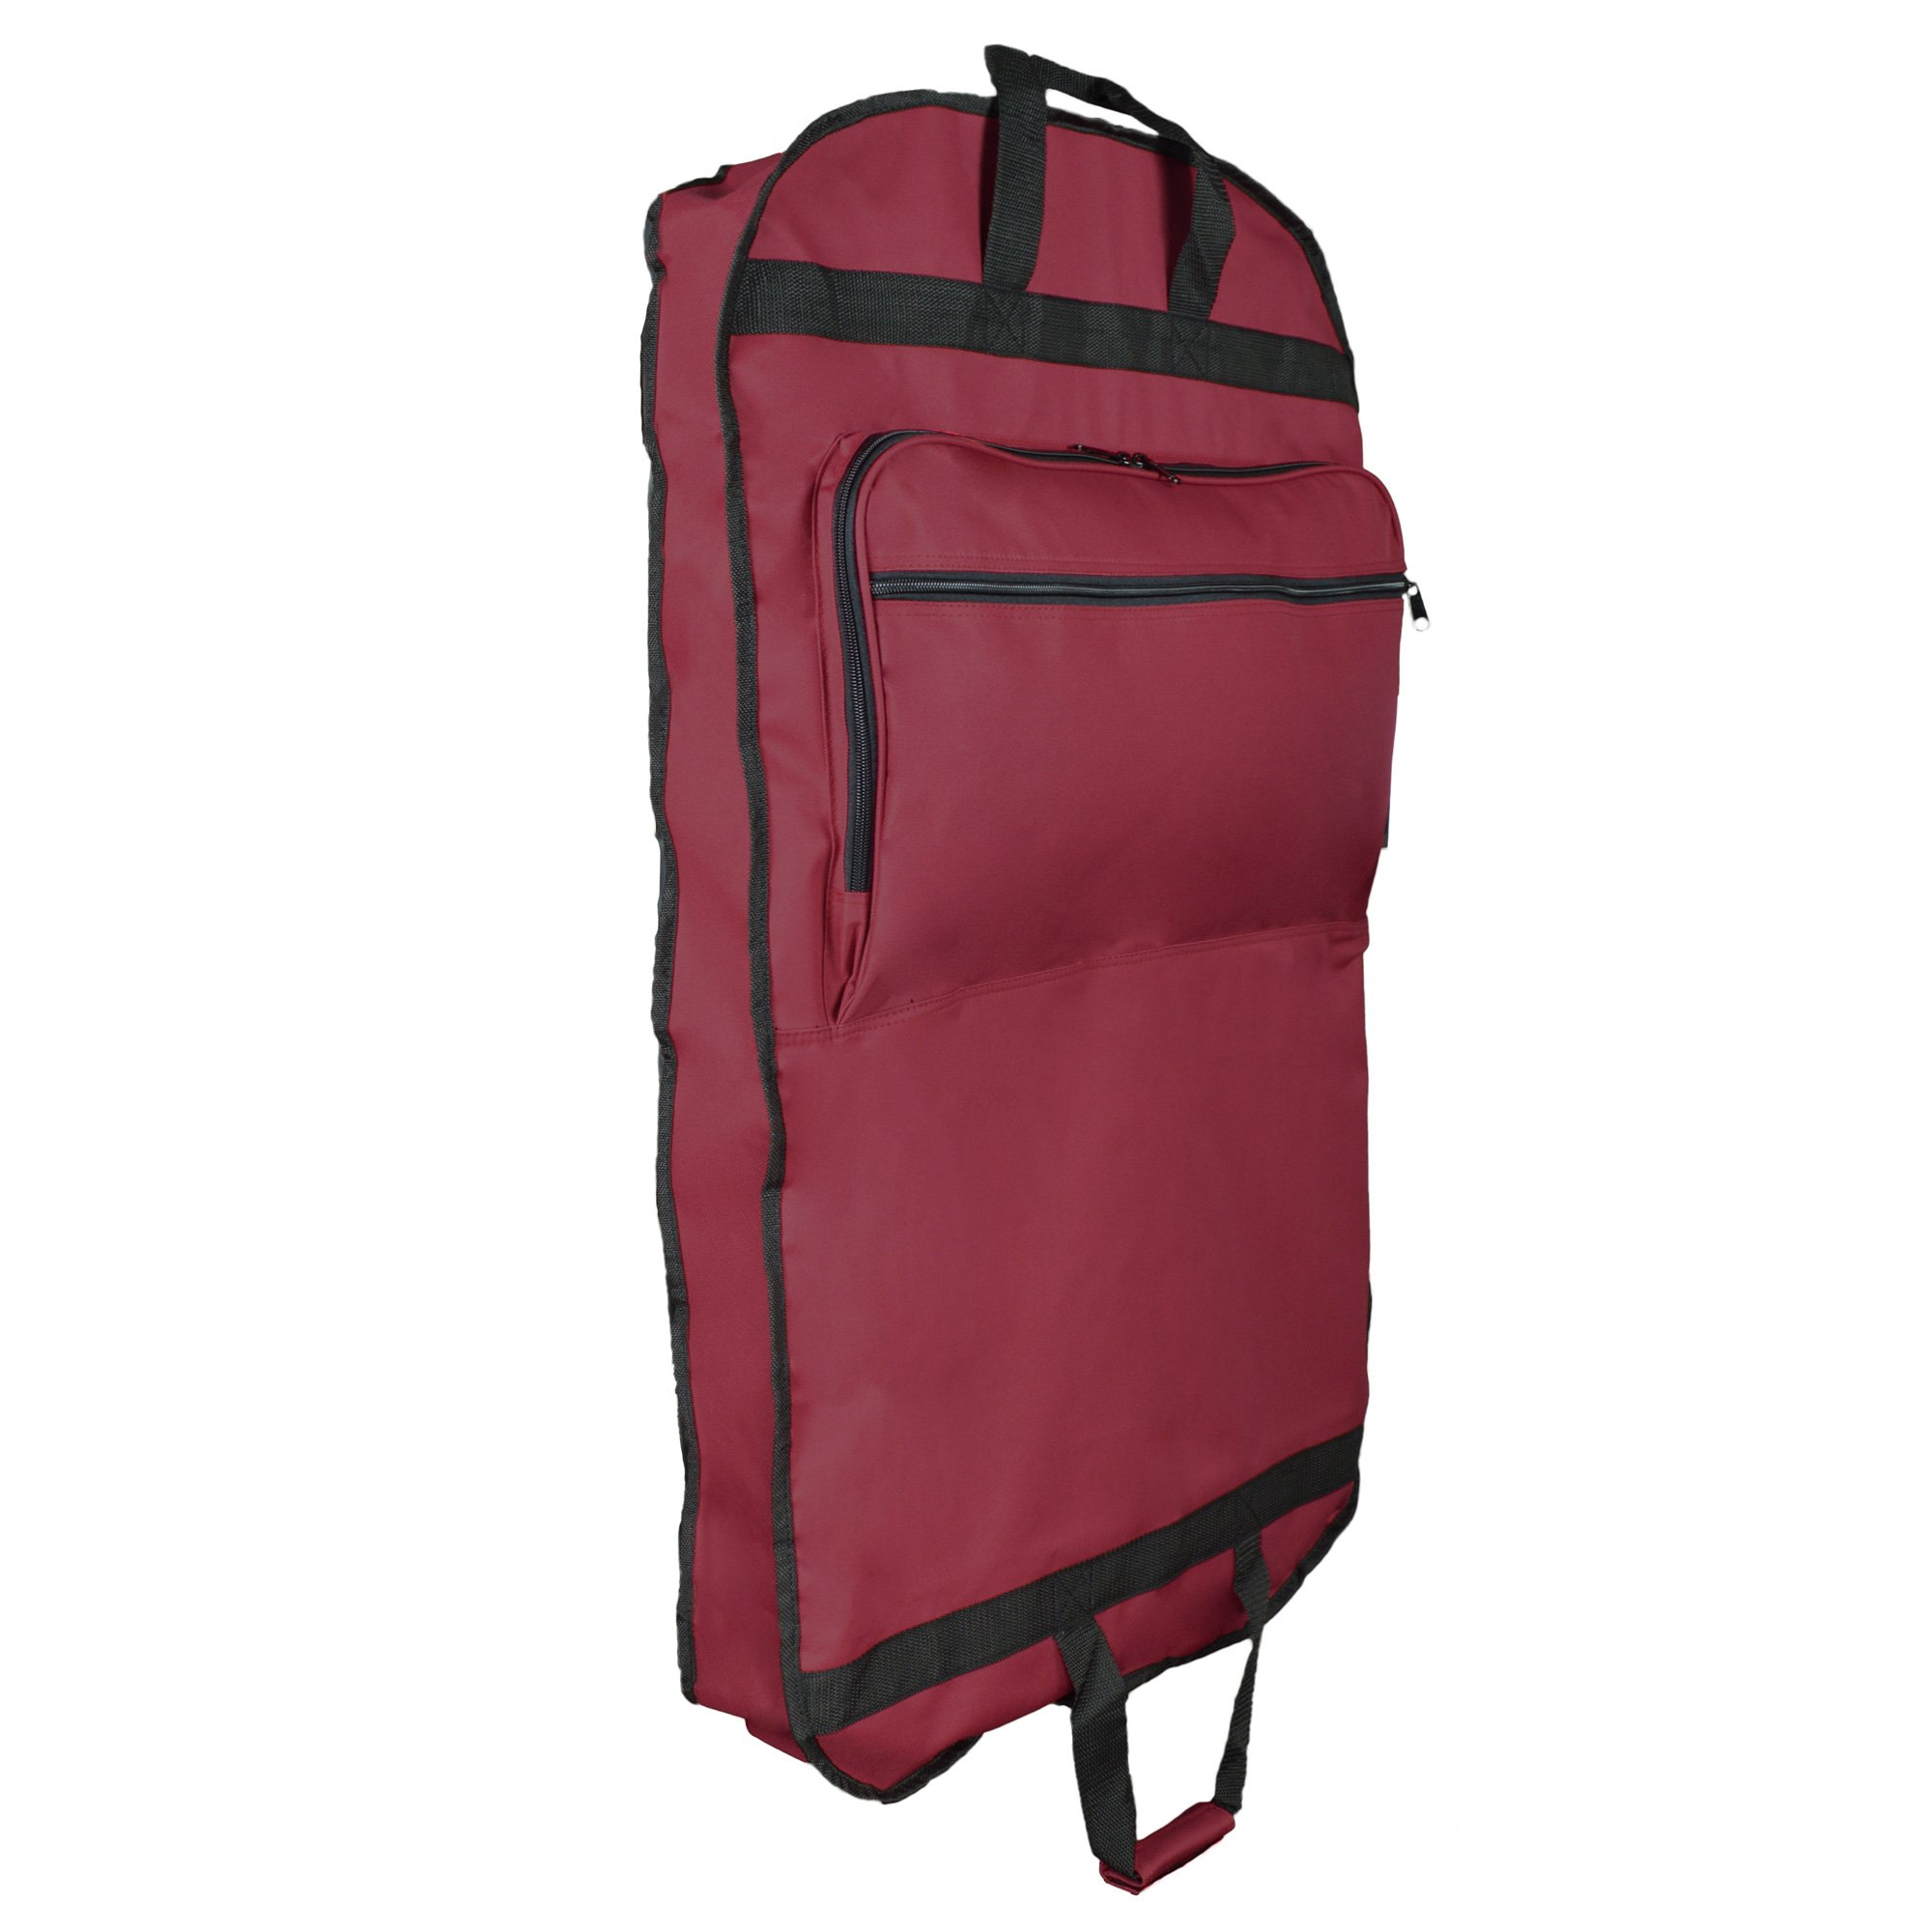 DALIX 39'' Garment Bag Cover for Suits and Dresses Clothing Foldable w Pockets in Maroon